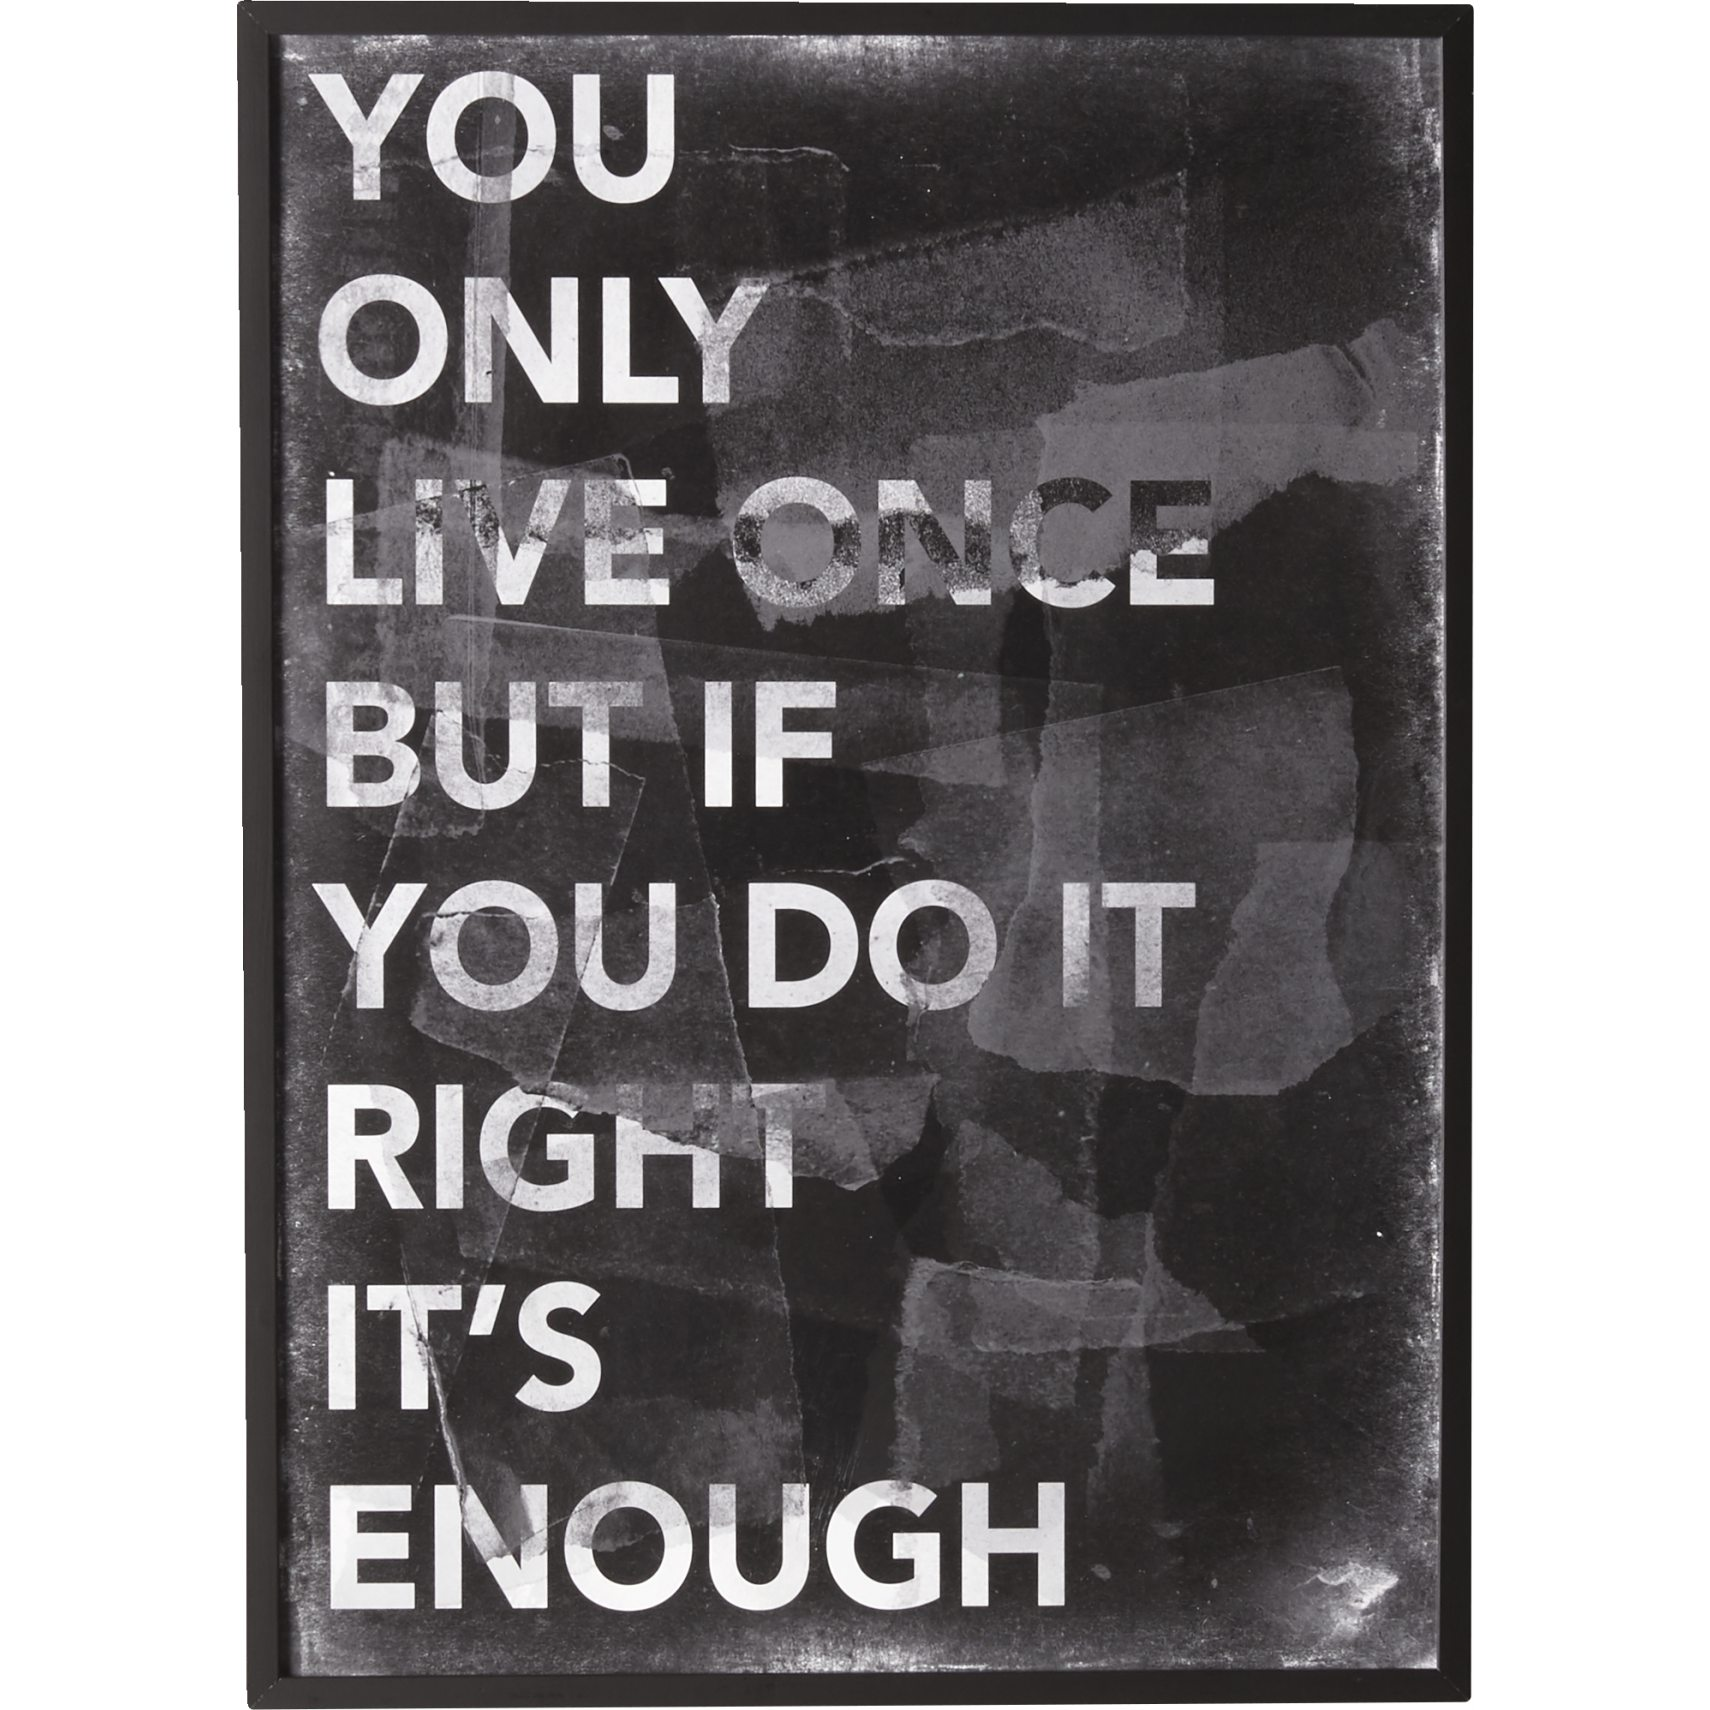 You Only Live Once Plakat 50 x 70 cm - Blank